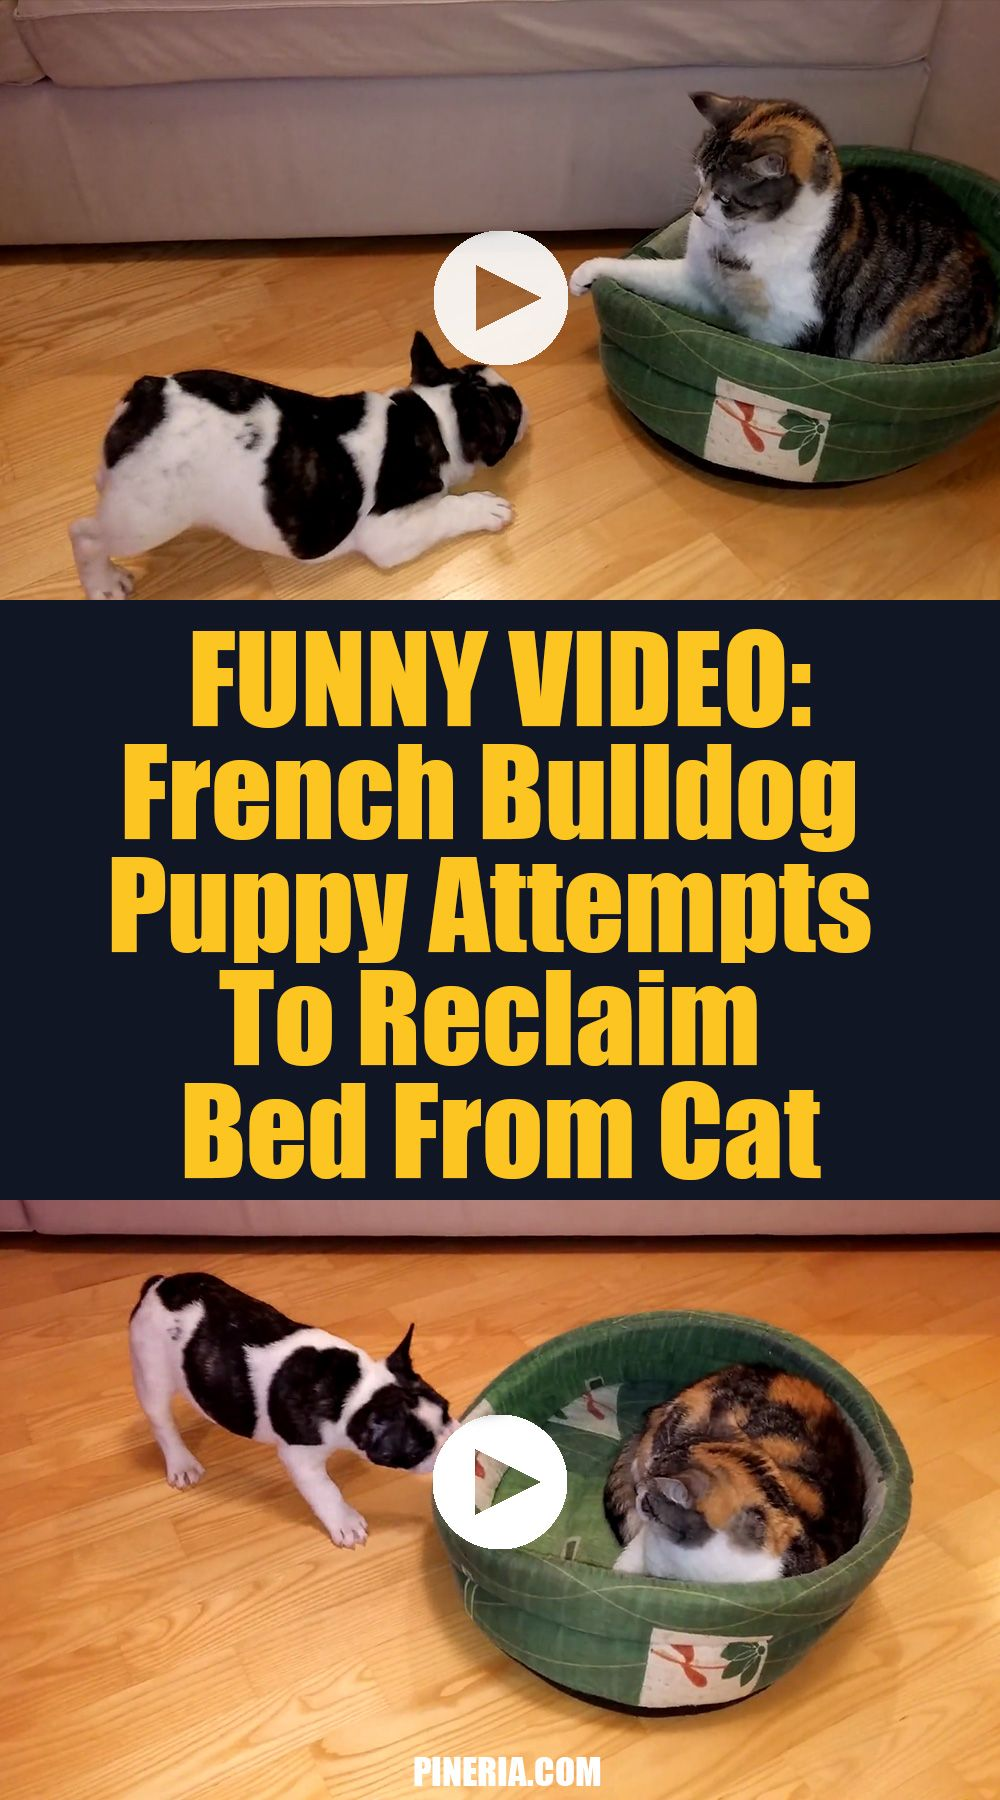 Funny Video French Bulldog Puppy Attempts To Reclaim Bed From Cat